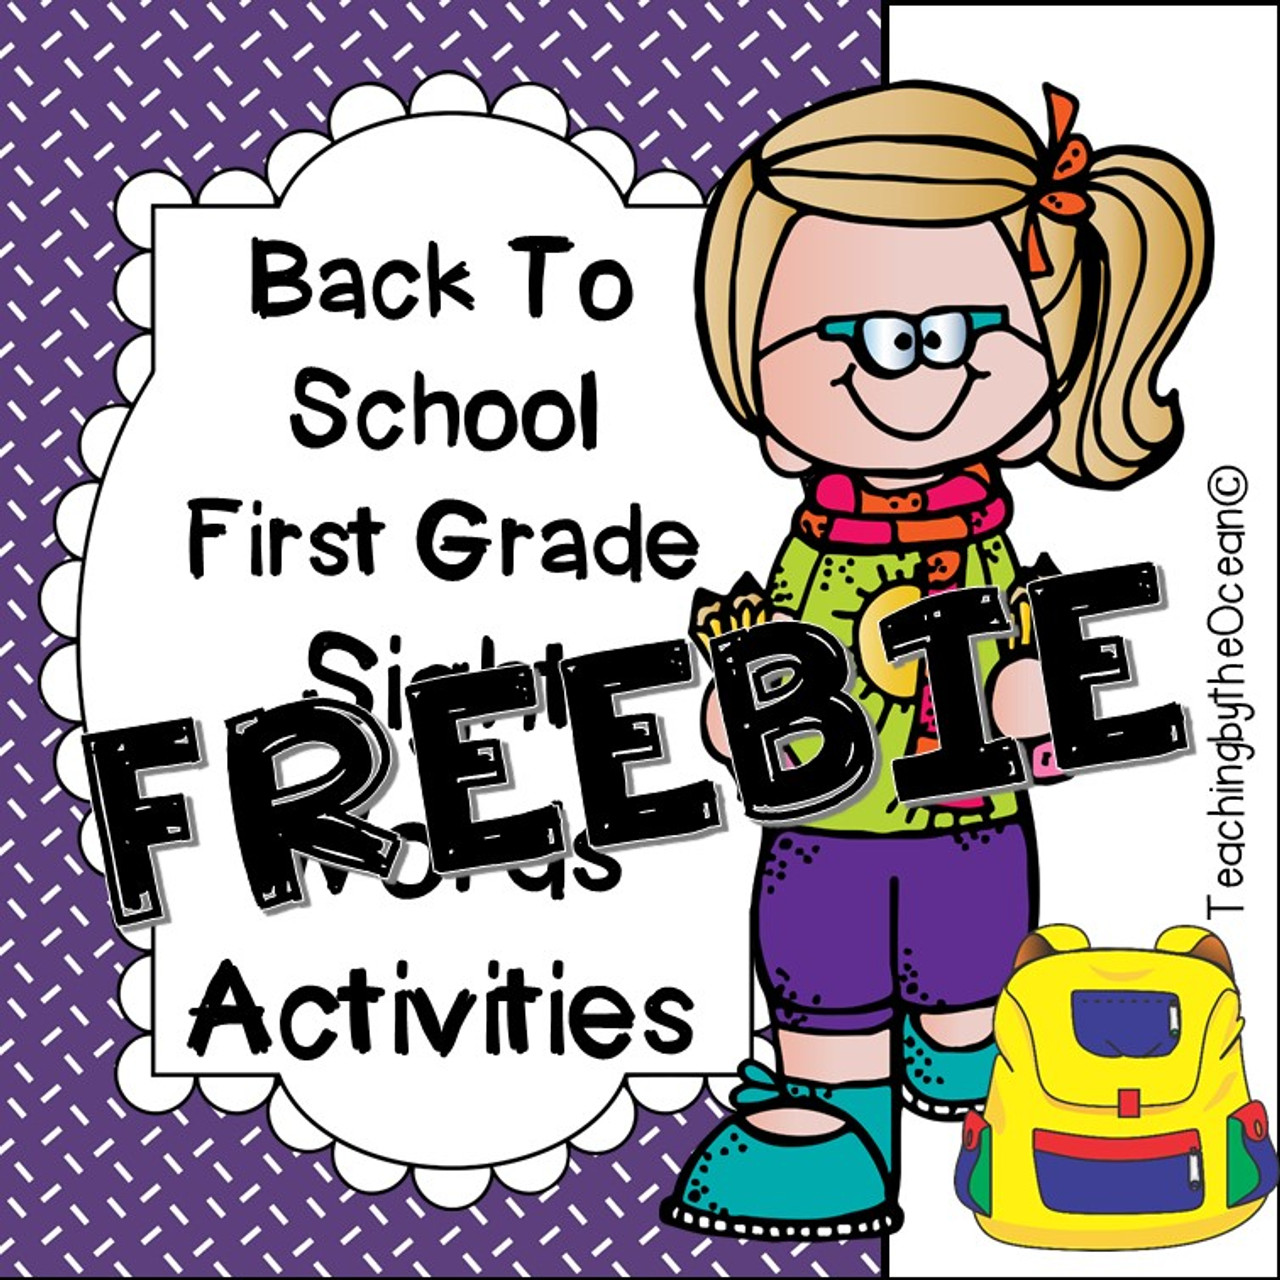 small resolution of First Grade Sight Words Activities - Back to School Themed FREEBI